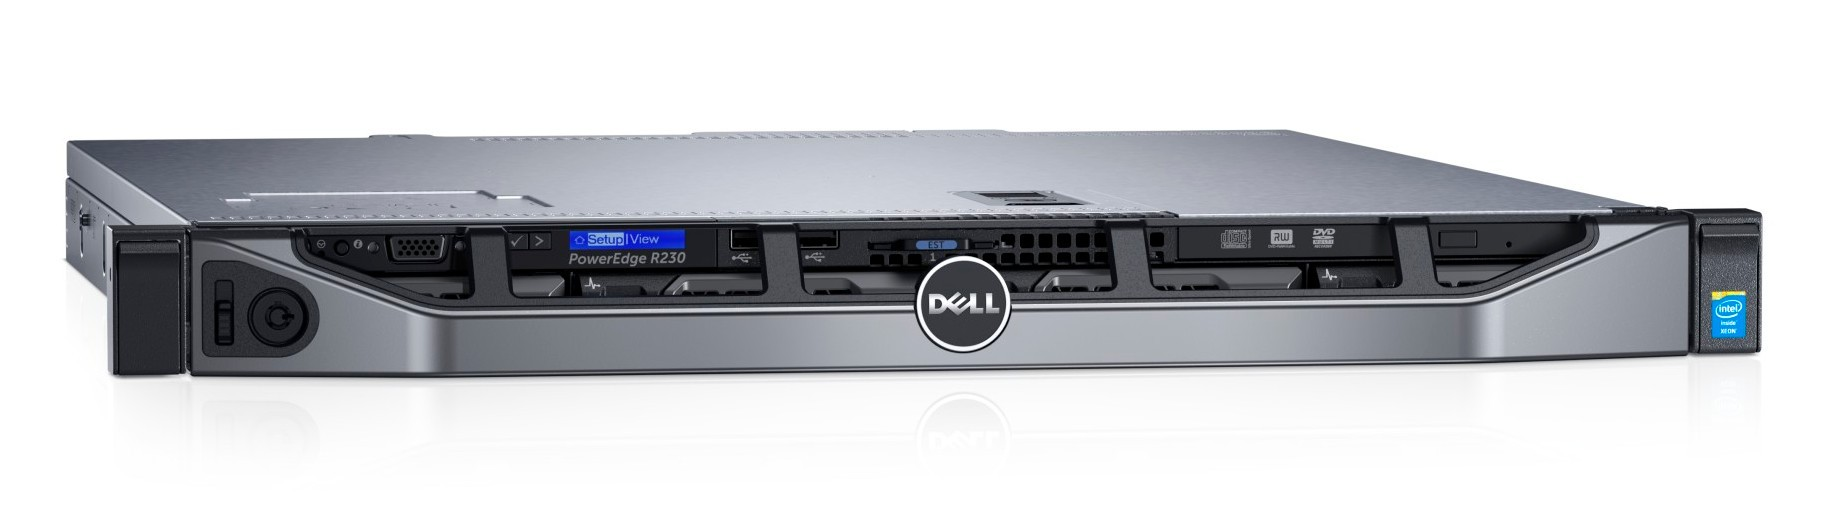 Máy chủ Dell PowerEdge R330 (4x3.5